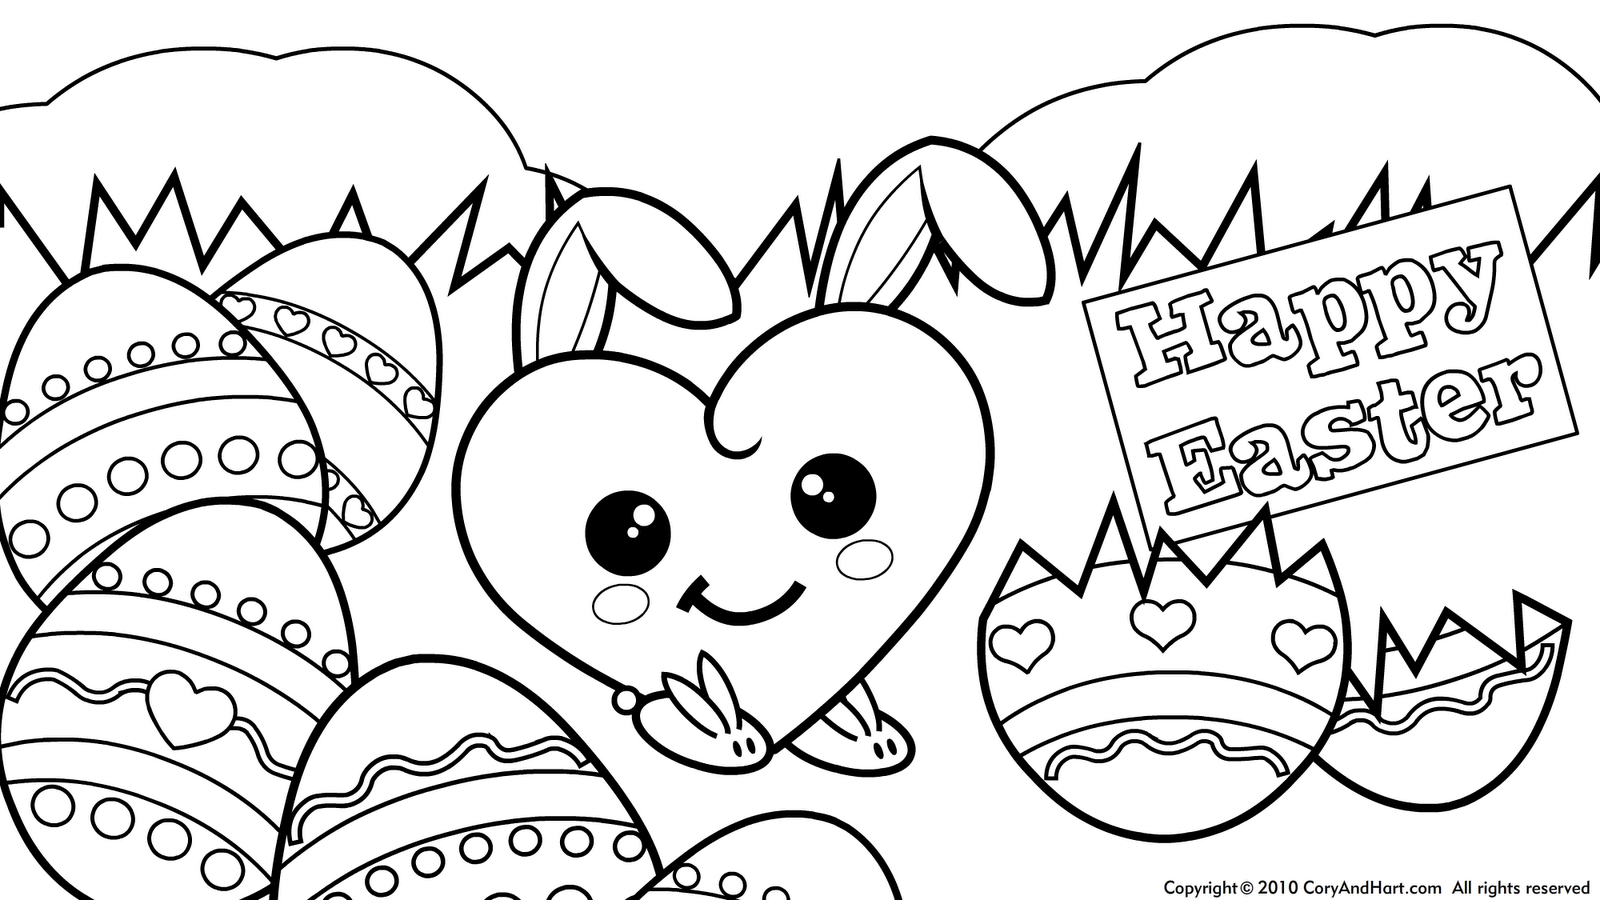 13 Cute Easter Coloring Pages Gt Gt Disney Coloring Pages Coloring Pages Easter